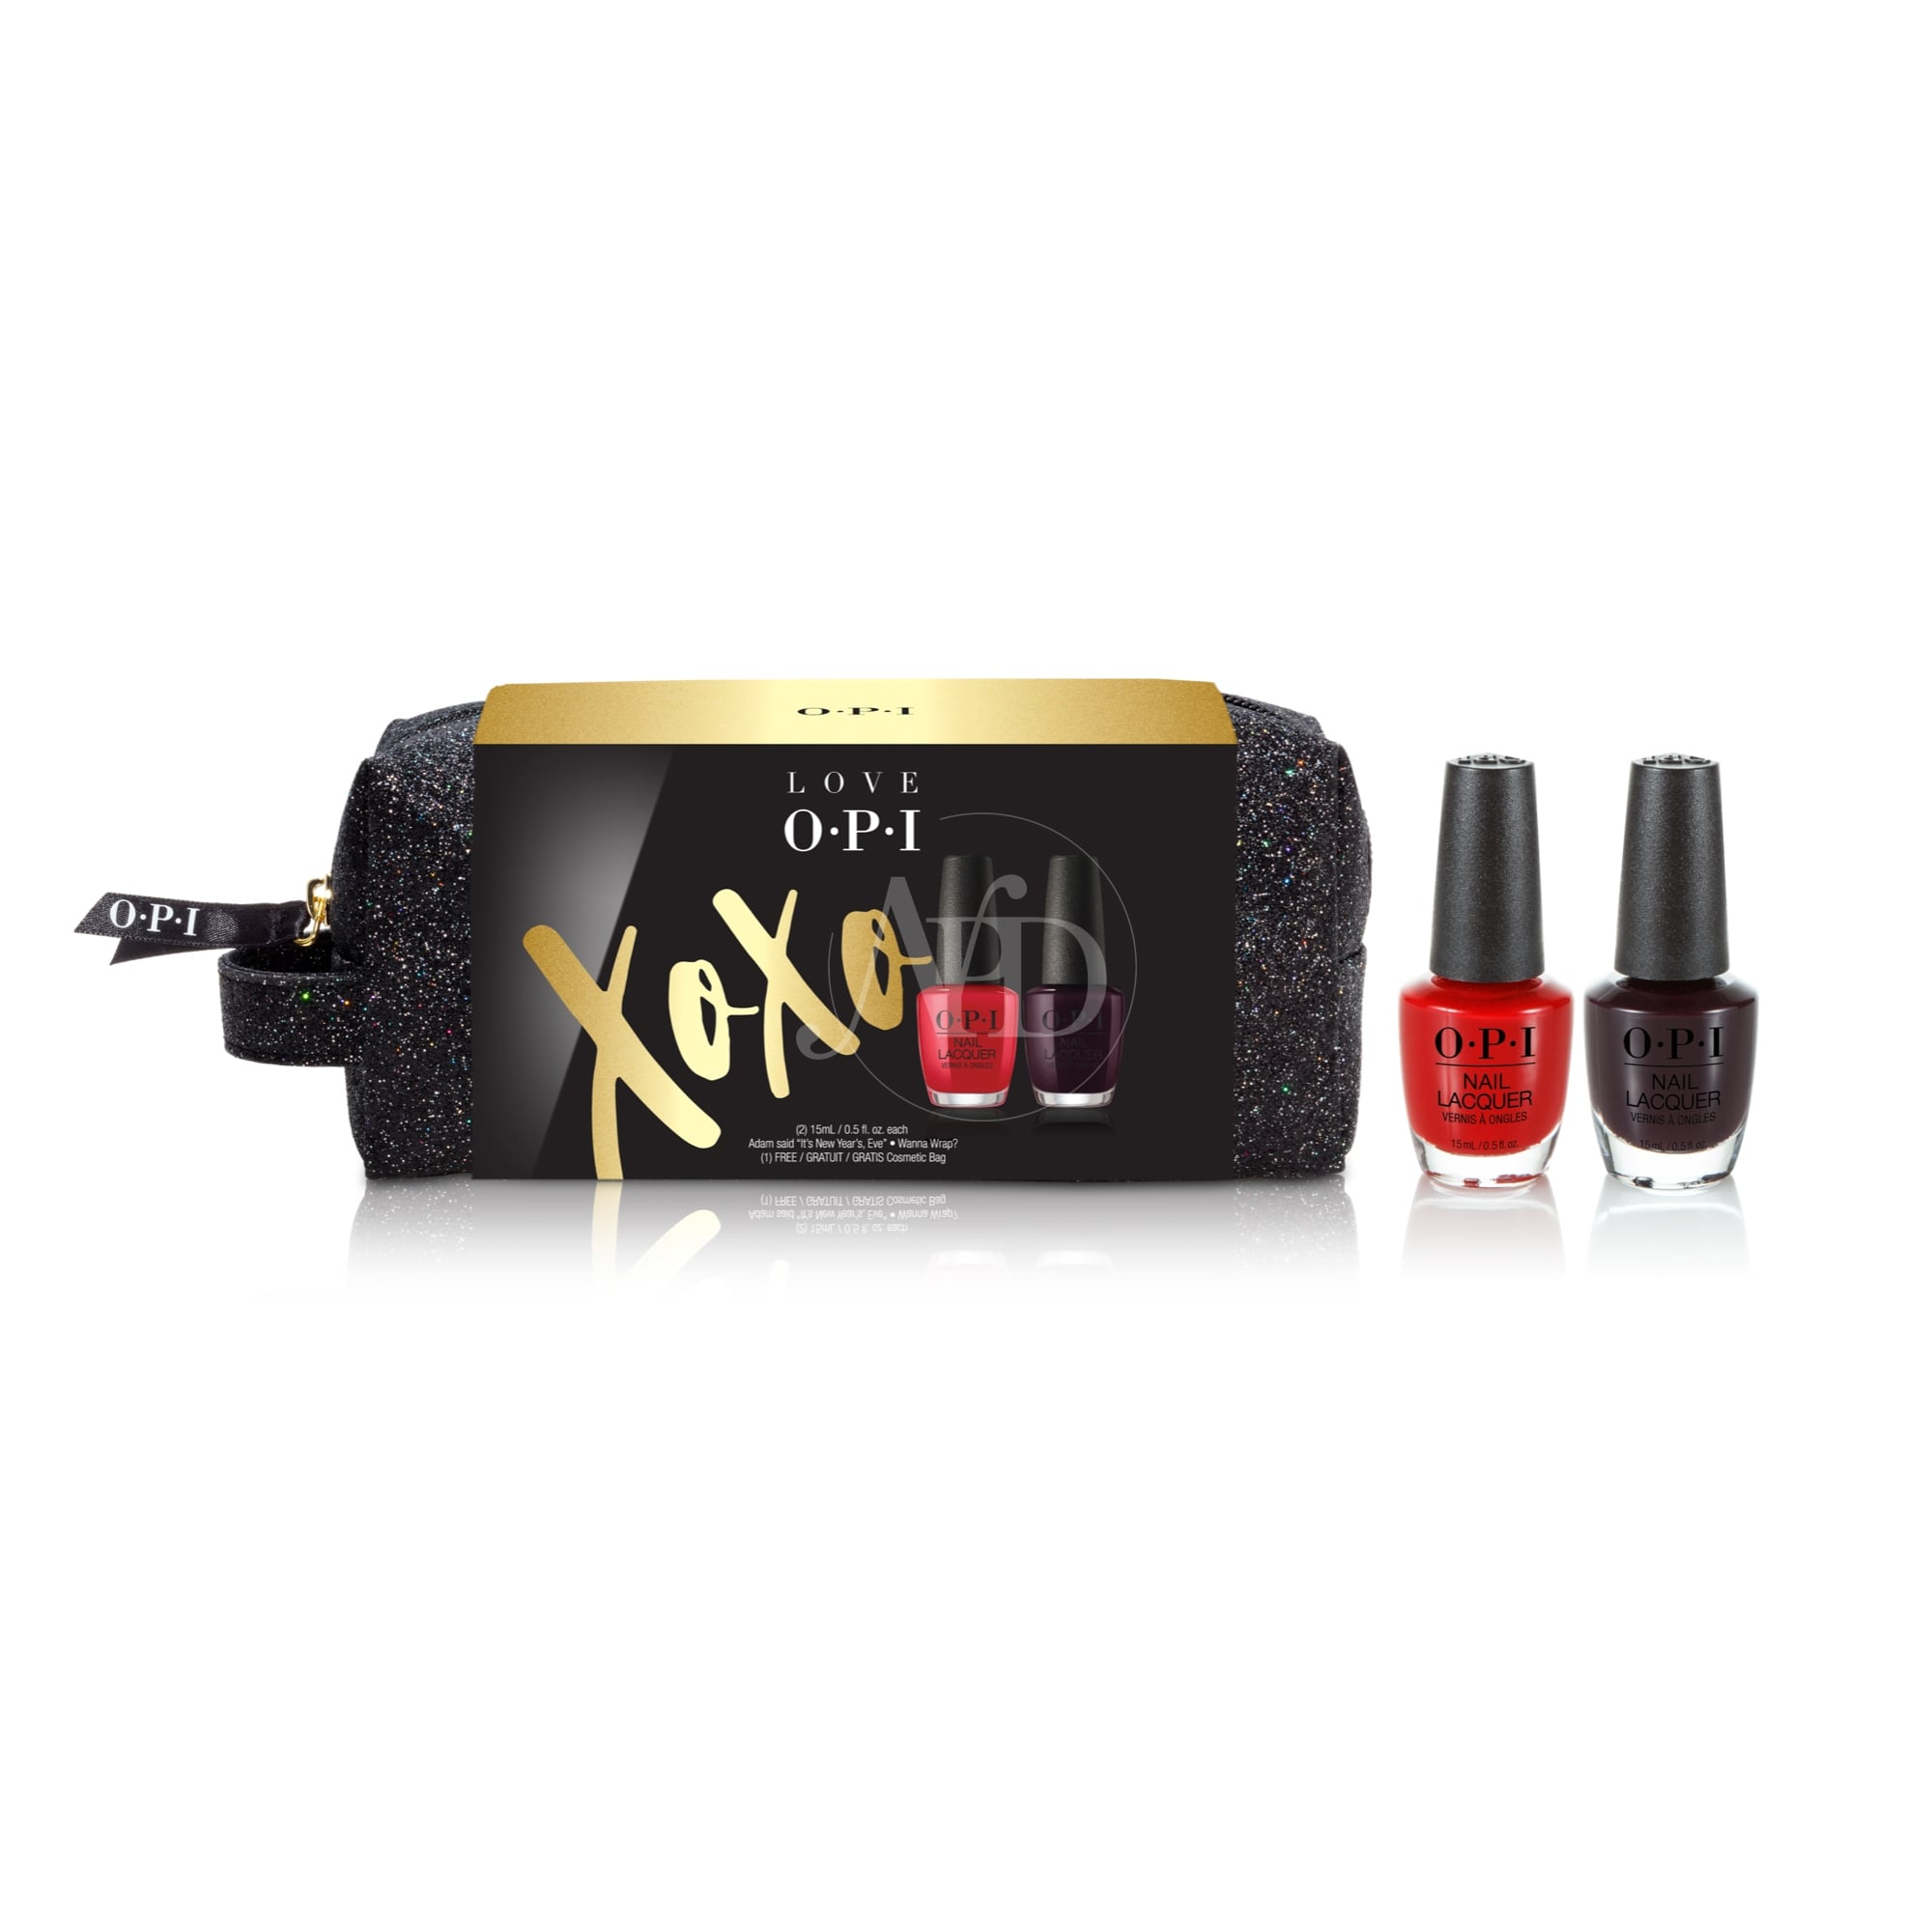 Love OPI XOXO Christmas 2017 Nail Polish Collection